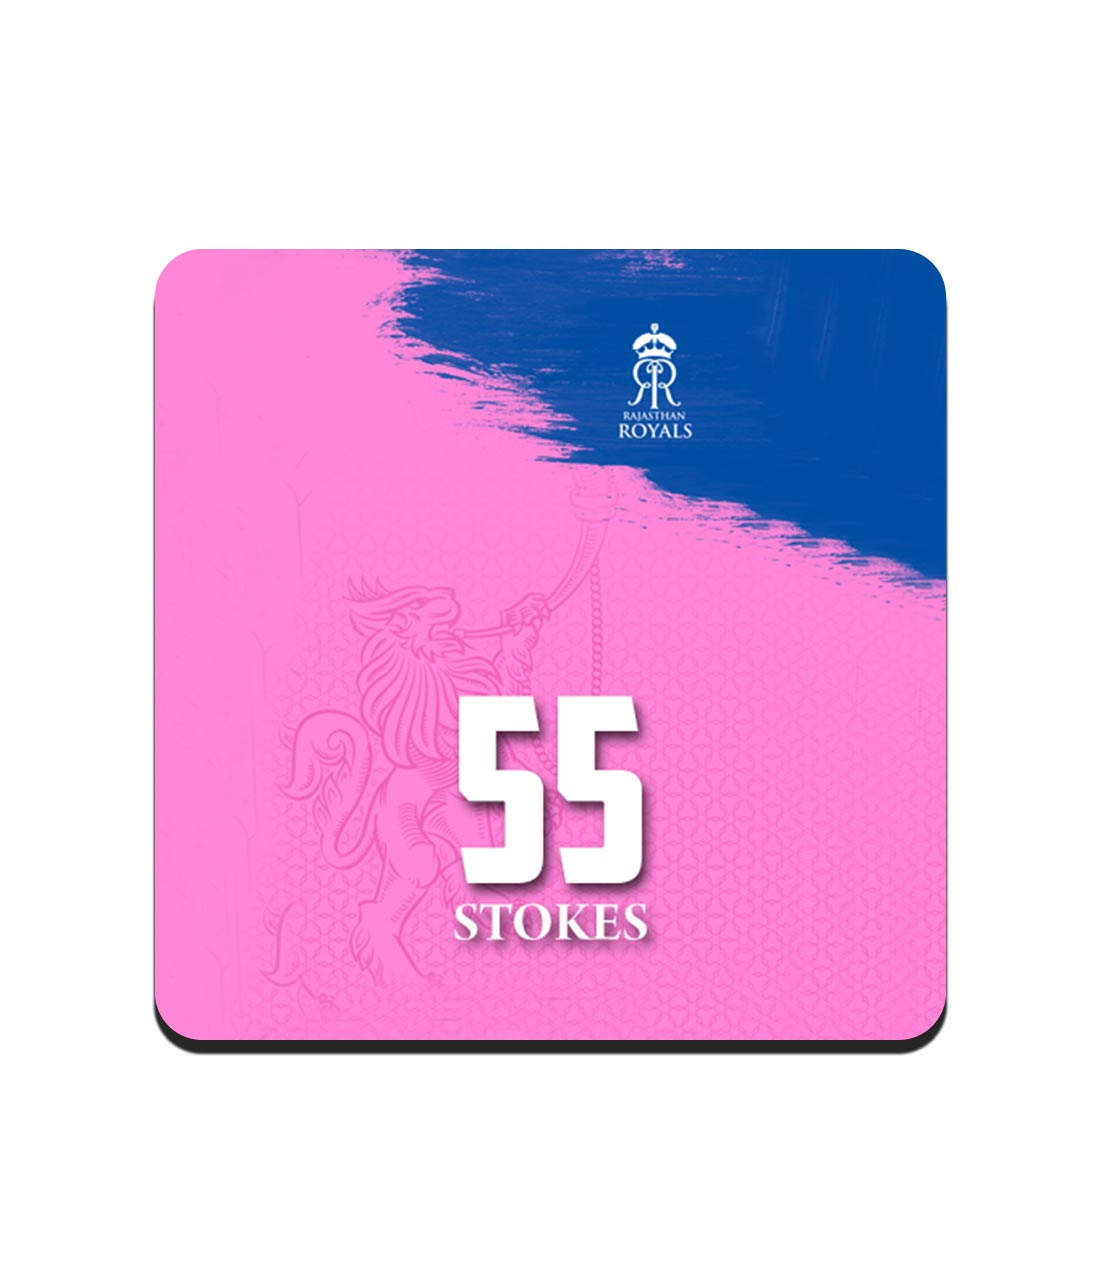 Rajasthan Royals Gear Up - 10 X 10 (cm) Coasters